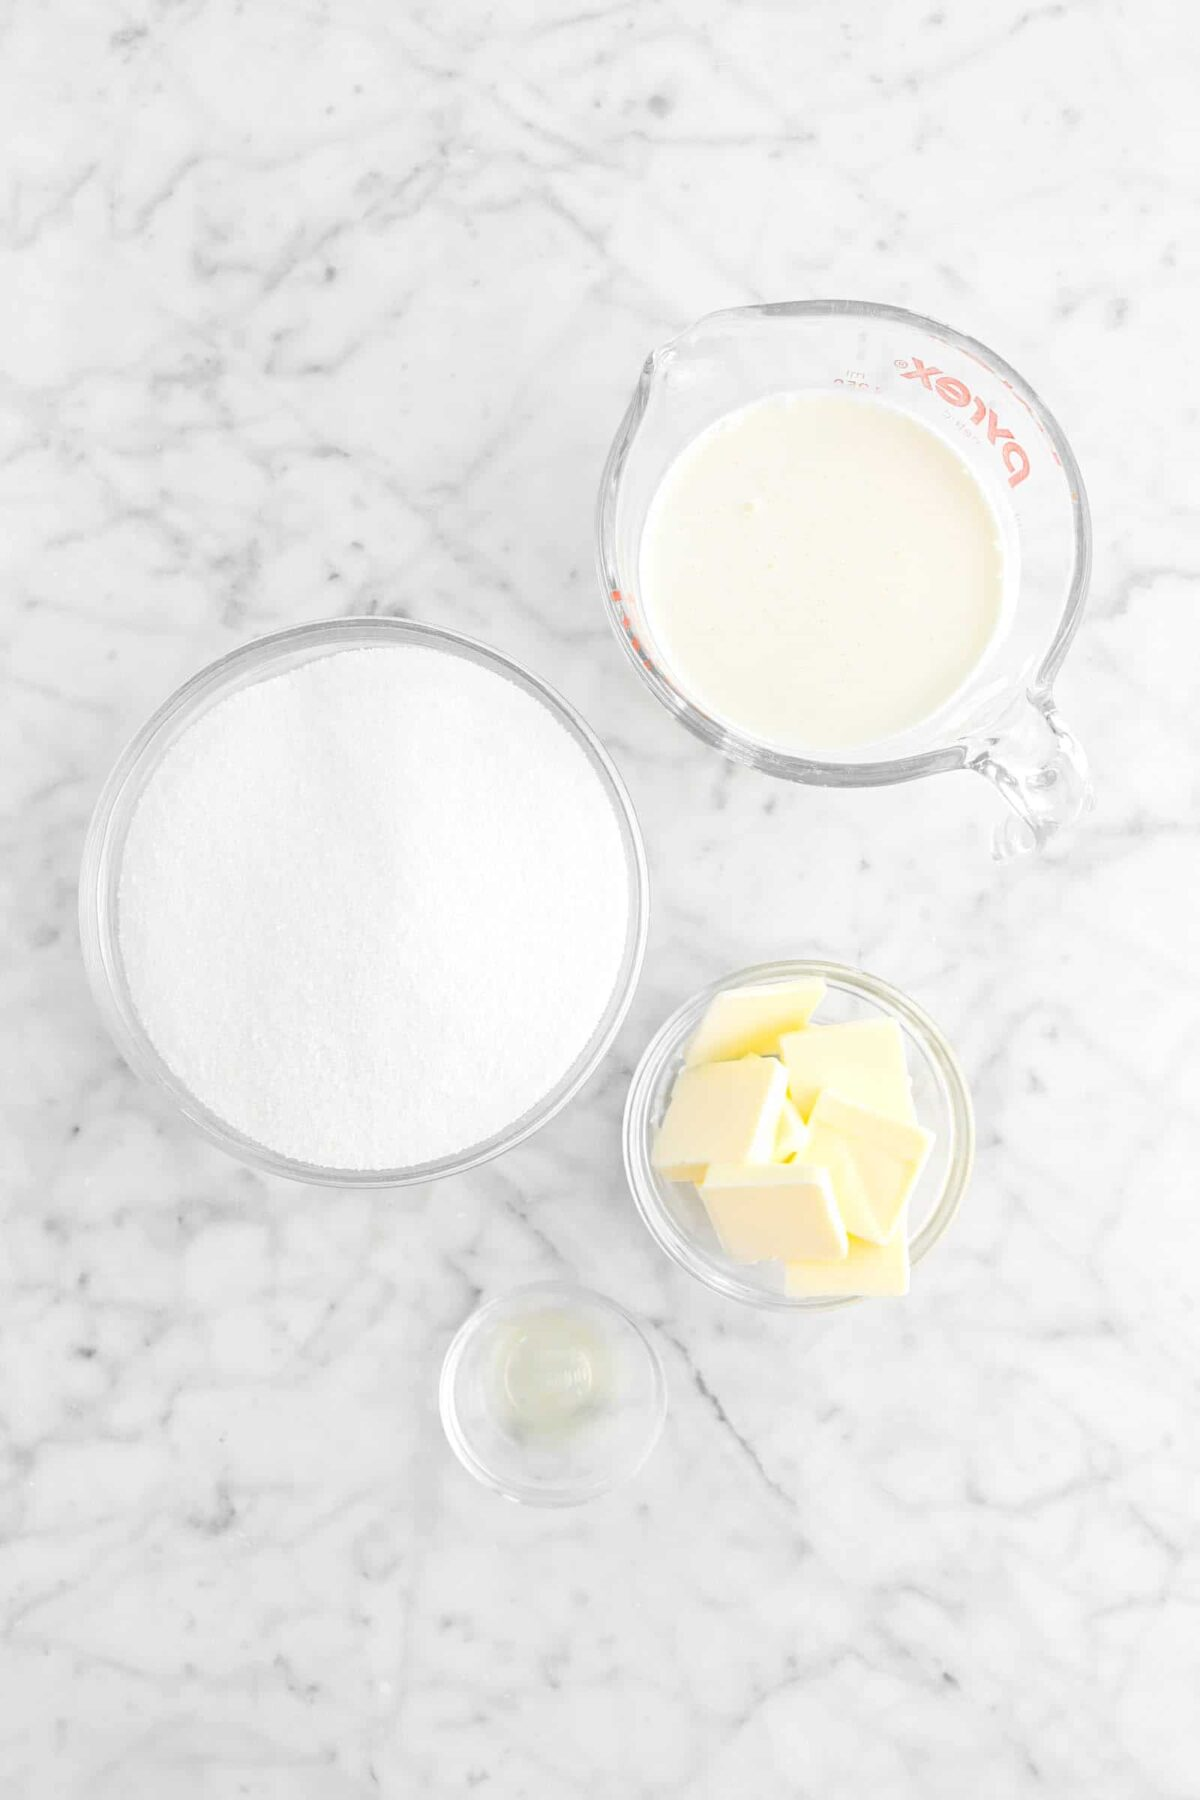 cream, sugar, butter, and lemon juice on marble counter